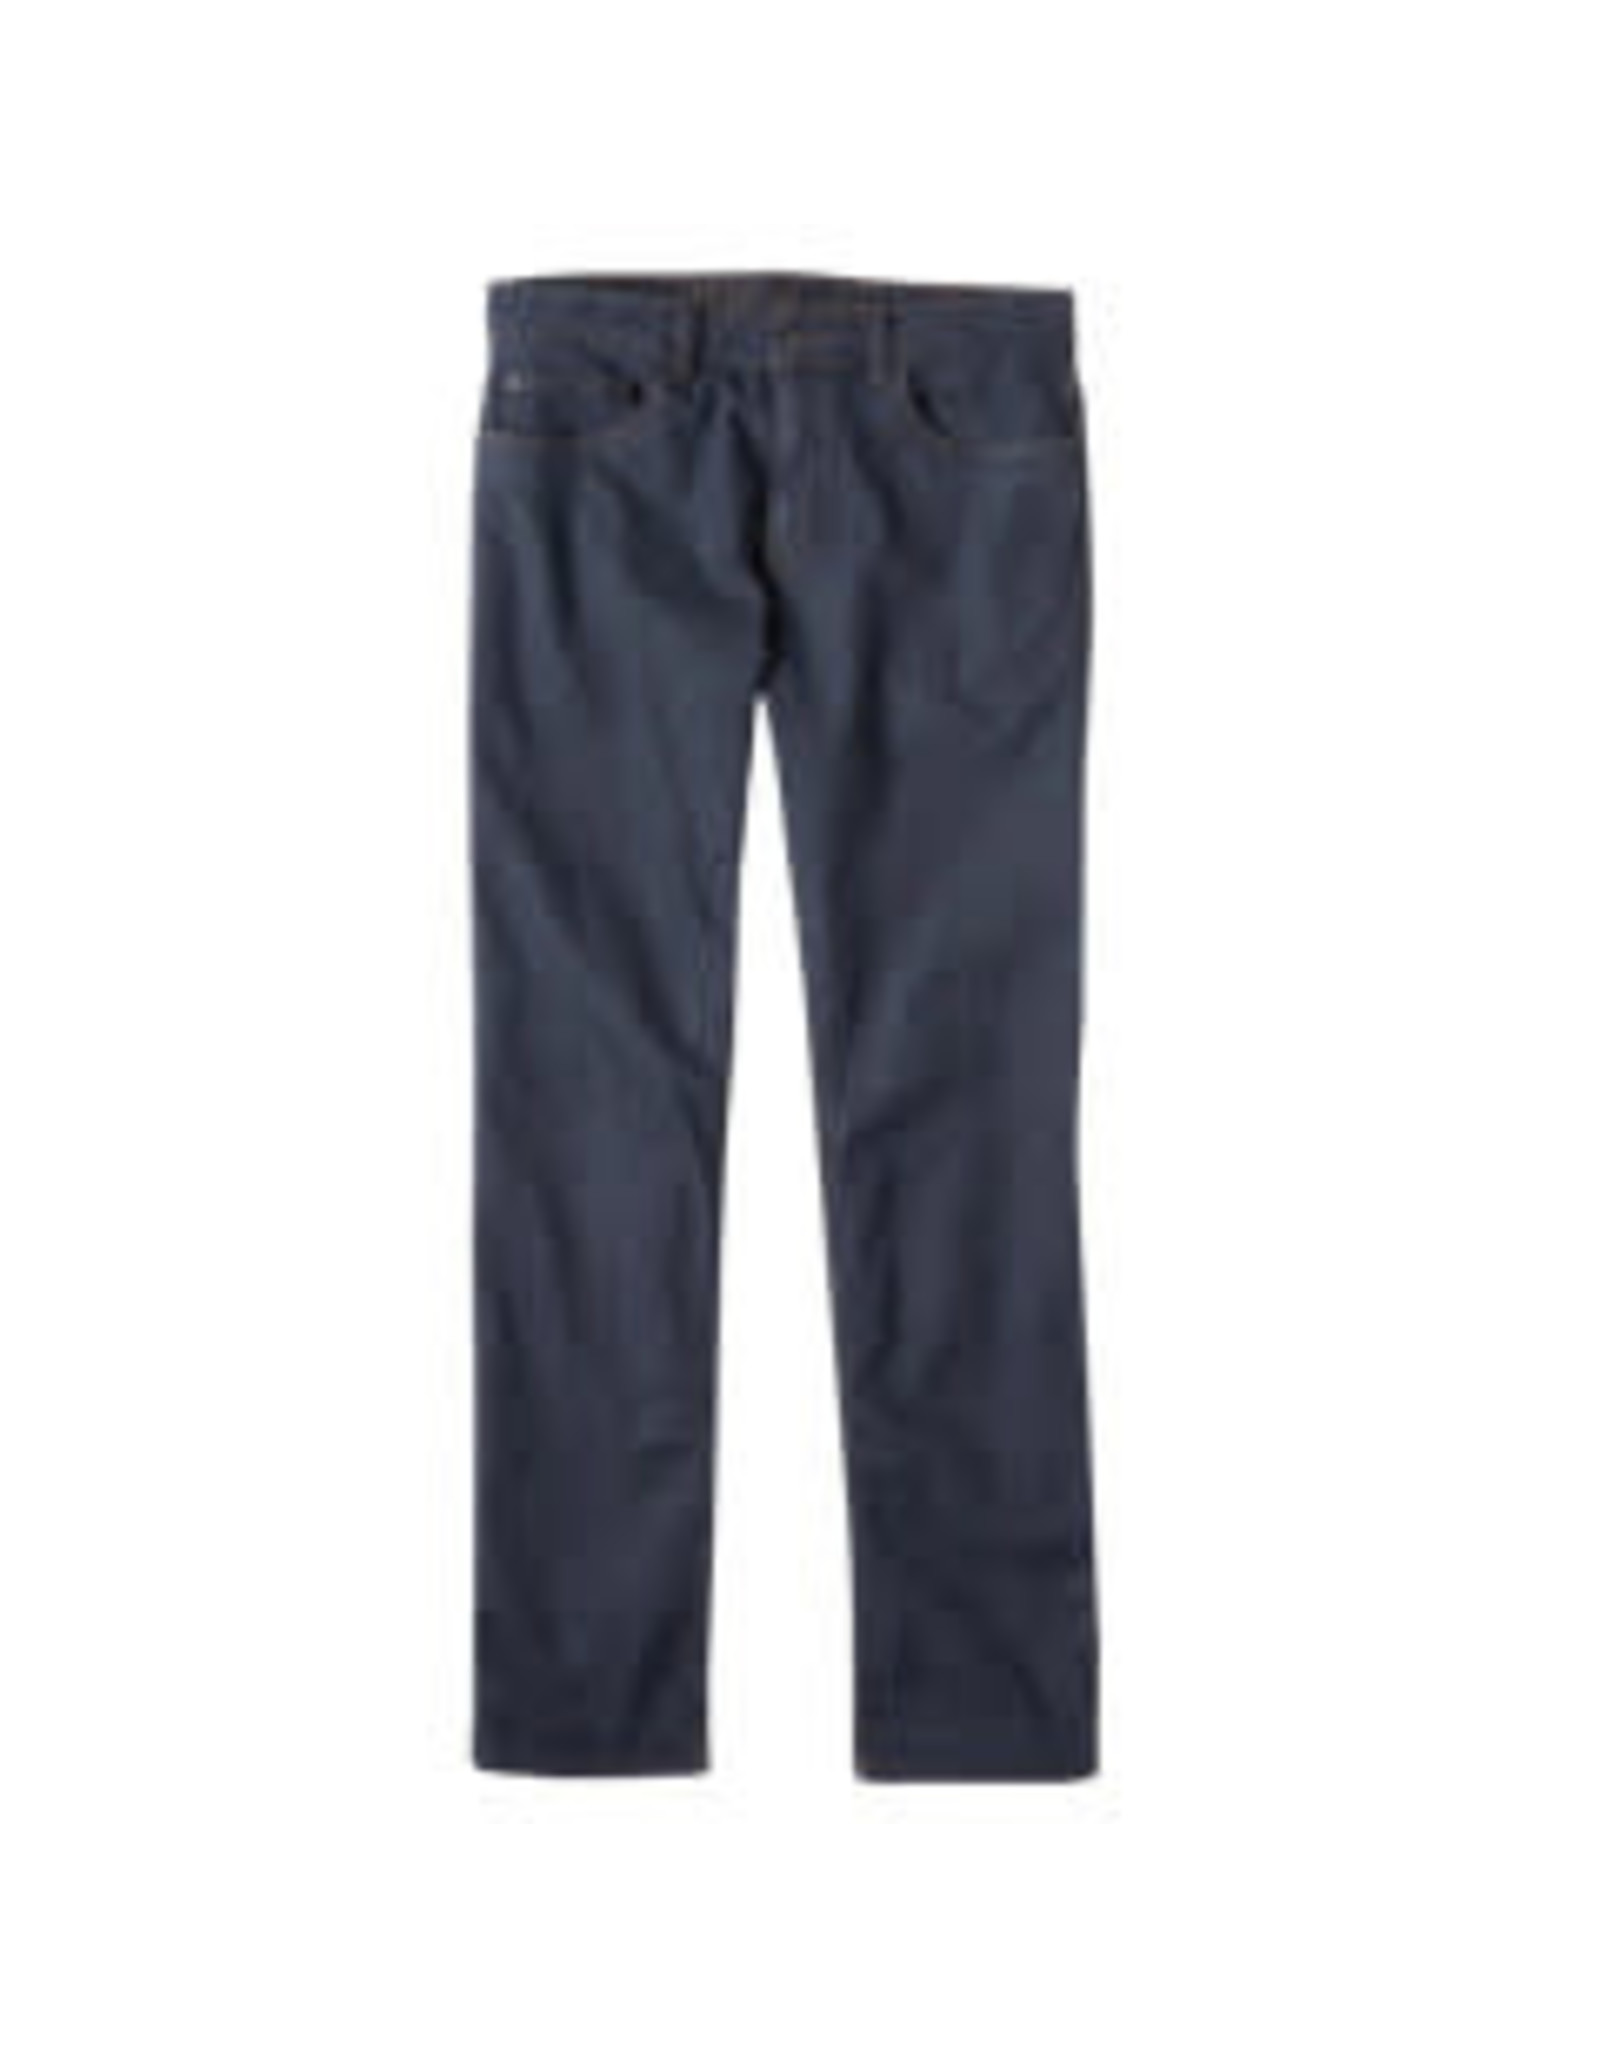 Prana Prana Bridger Jean: Denim- 32/30